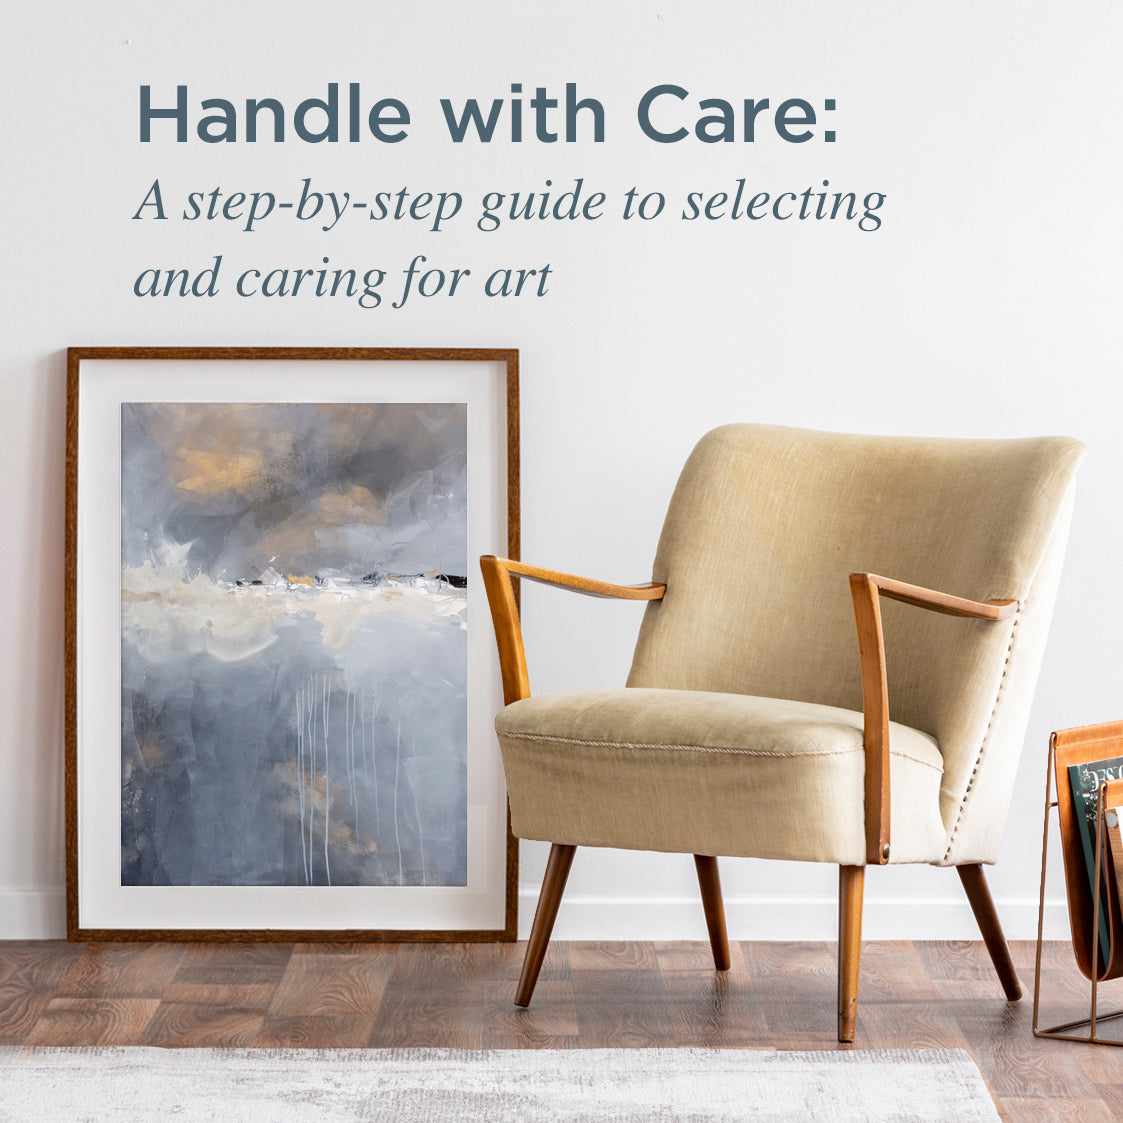 Handle with Care: A step-by-step guide to selecting and caring for art